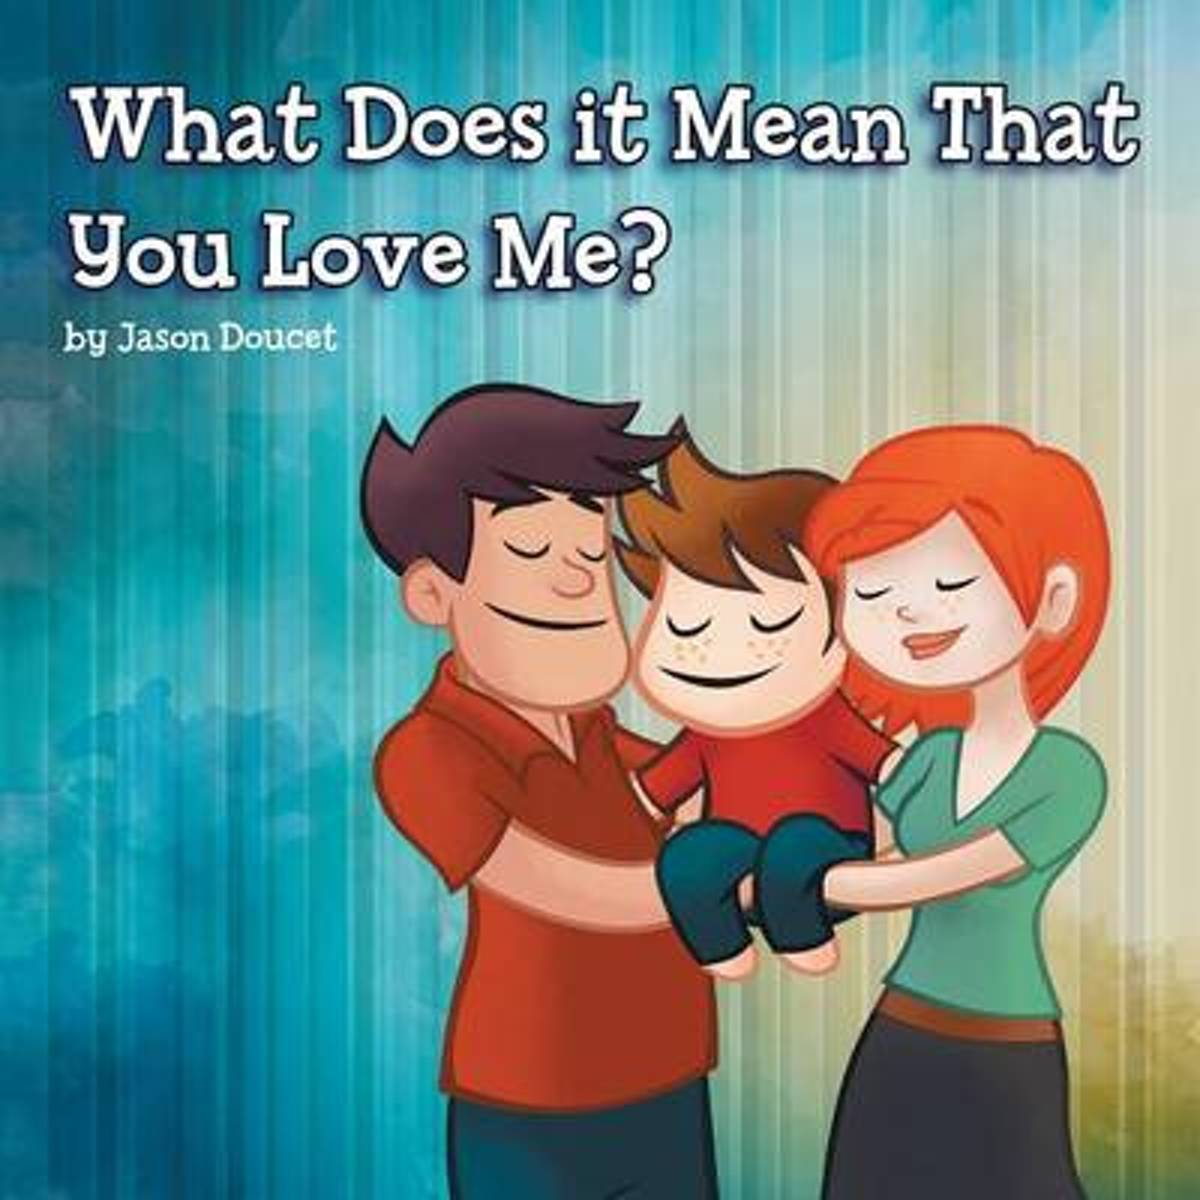 What Does It Mean That You Love Me?